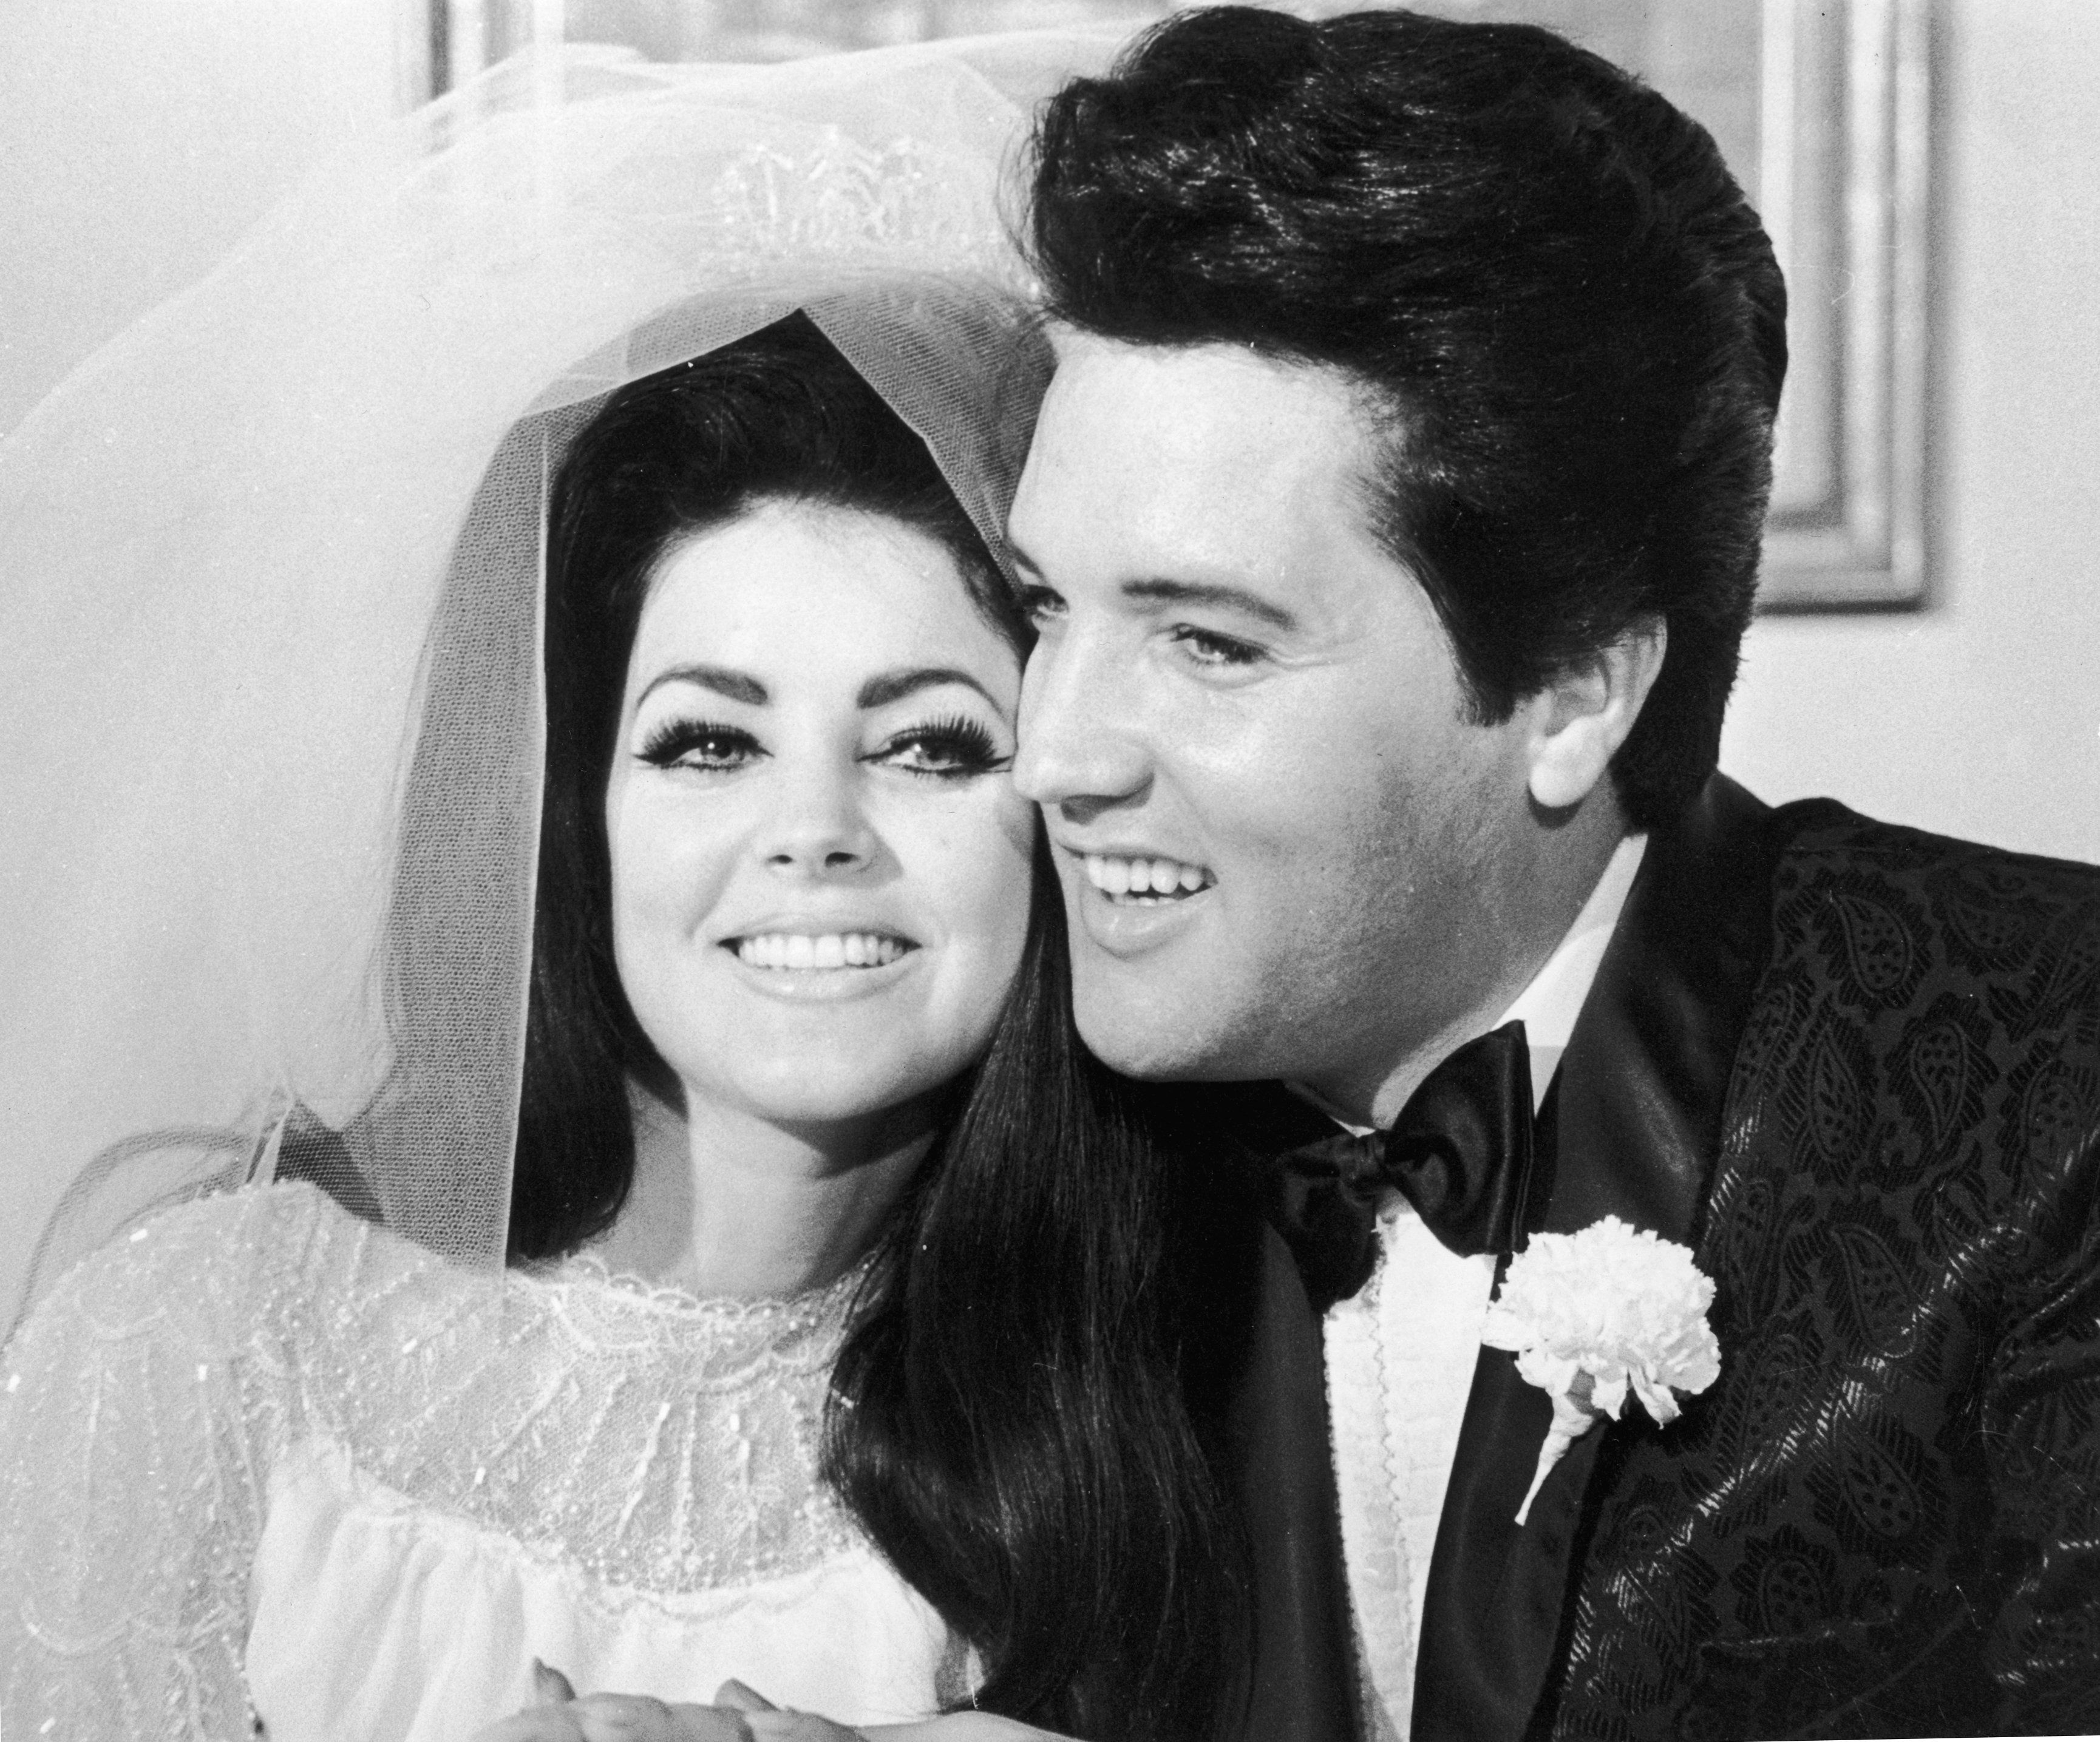 1st May 1967:  American rock musician Elvis Presley (1935 - 1977) and his wife, Priscilla Beaulieu Presley, hugging each other on their wedding day, Las Vegas, Nevada. Priscilla wears her bridal gown and veil, and Elvis wears a shiny paisley jacket.  (Photo by Hulton Archive/Getty Images)